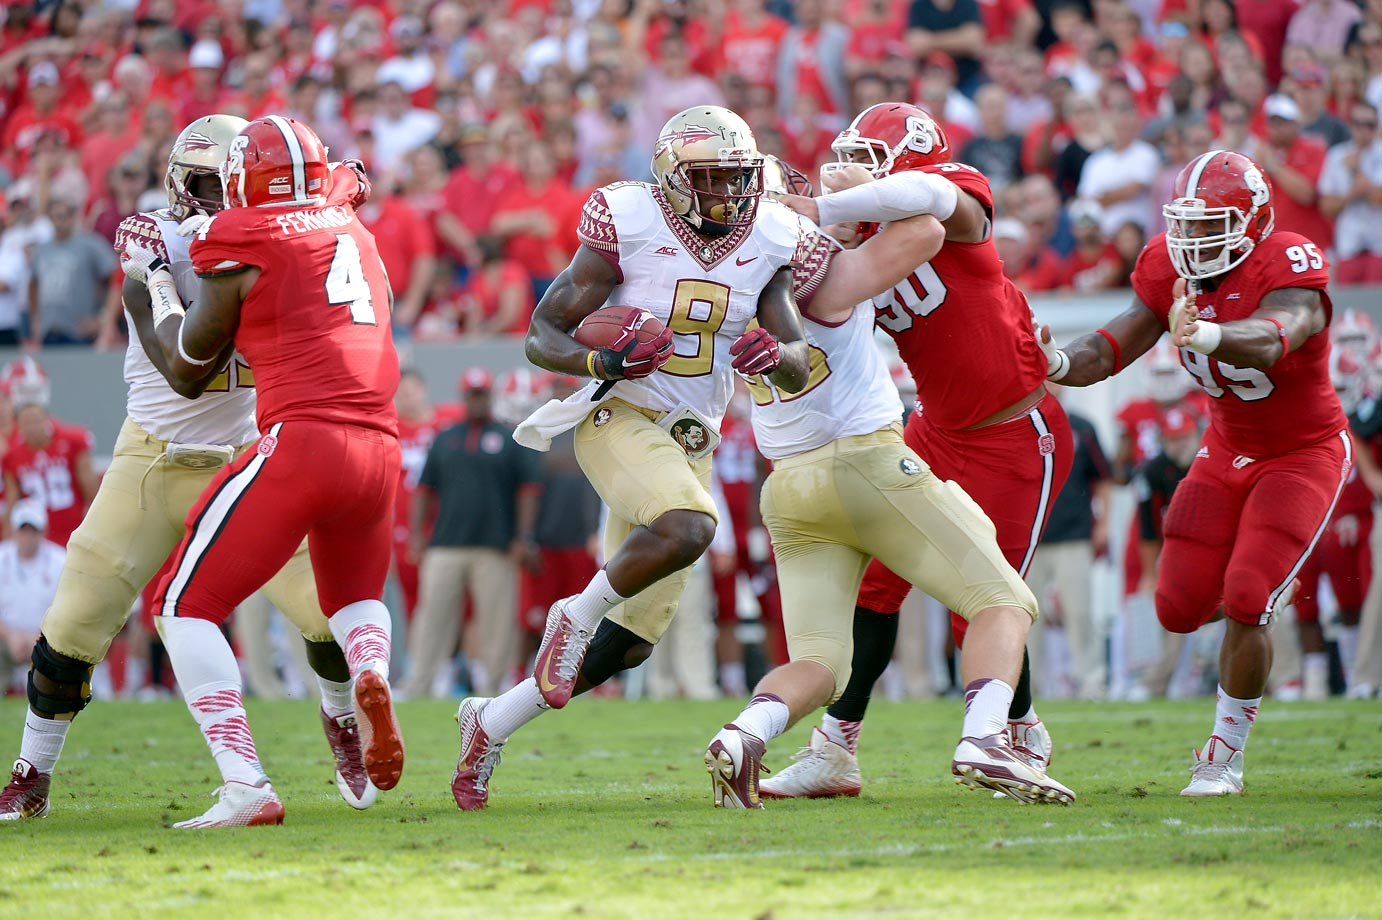 After spotting the Wolfpack a 17-point lead in the first quarter and a 38-28 advantage in the third quarter, Winston and the Seminoles offense rallied for four touchdowns in the final 20:06 to come back and pull away. Karlos Williams picked up 126 yards and three touchdowns on the ground.